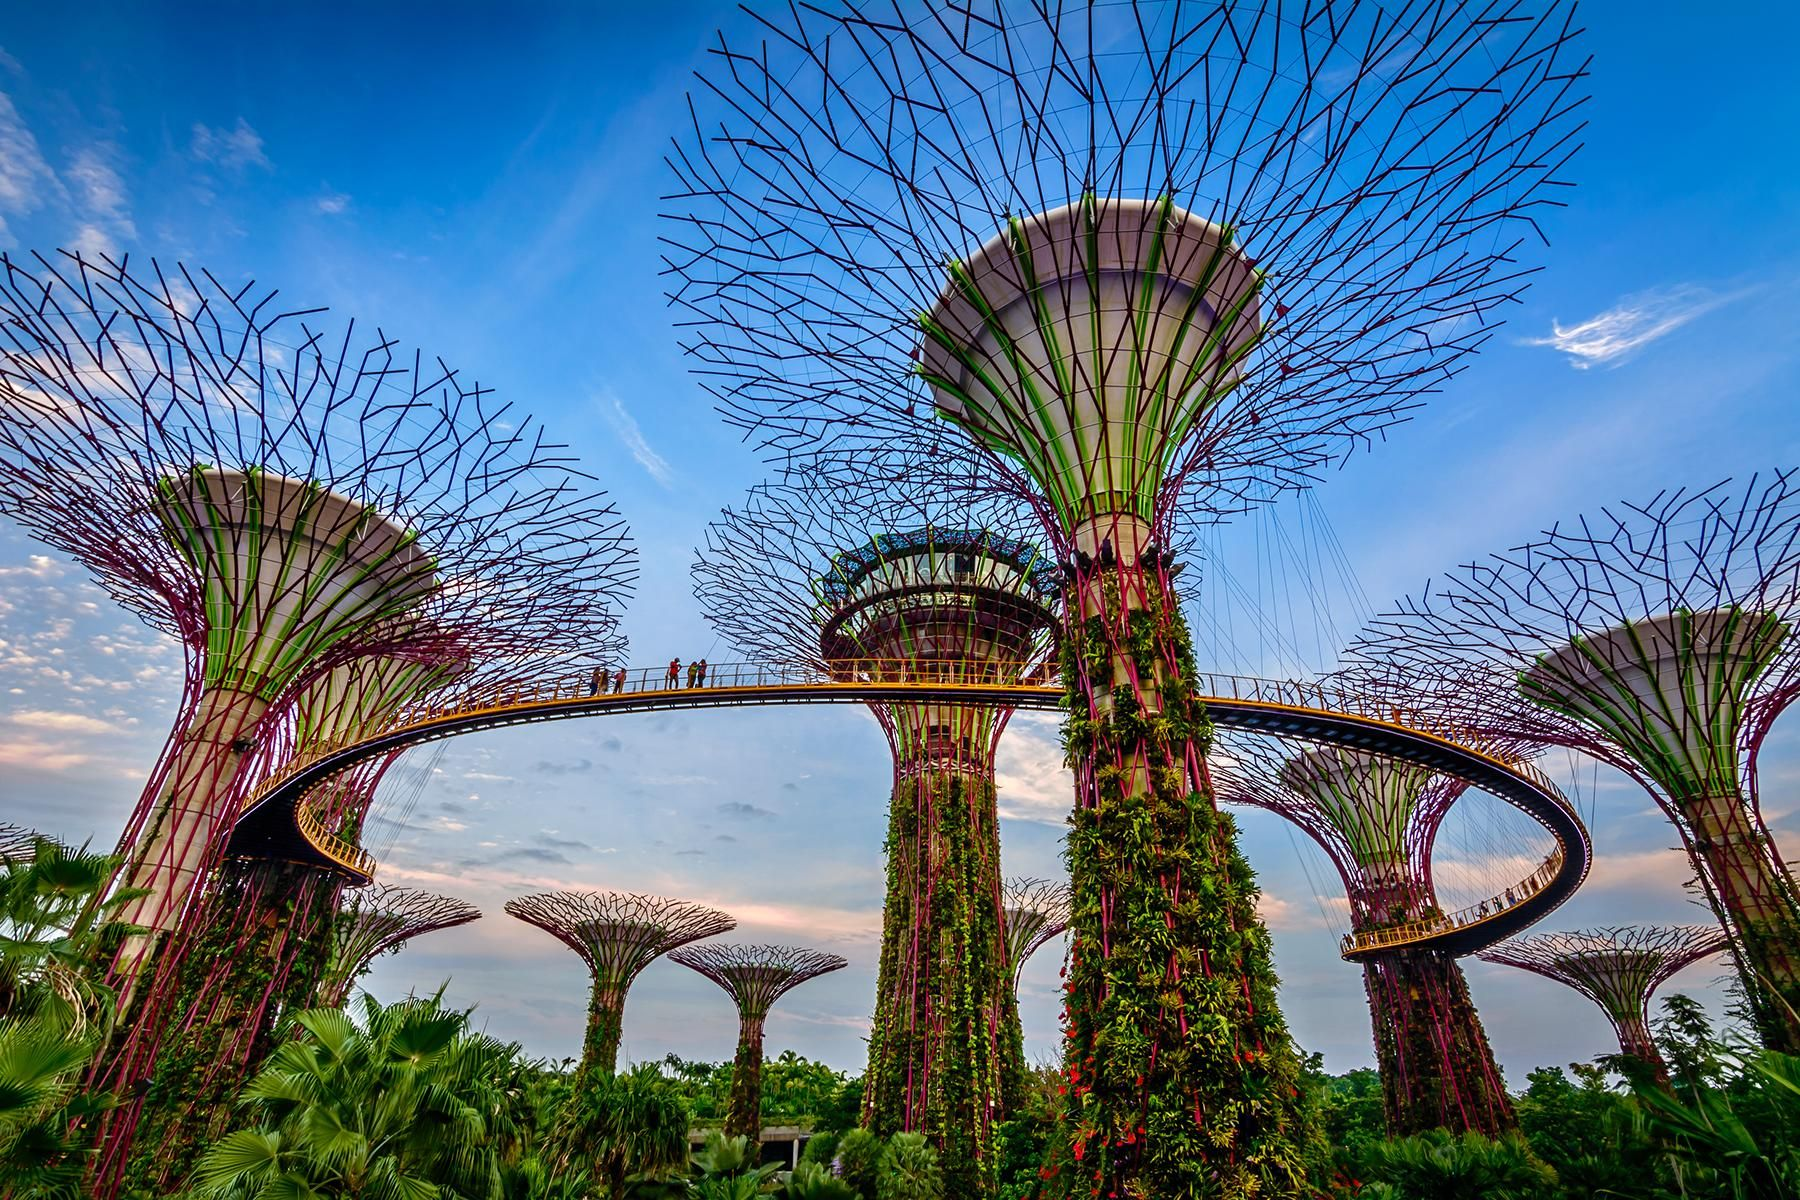 A Crazy Rich Asians Guide To Singapore Gardens By The Bay Singapore Garden The Parking Spot Hobby